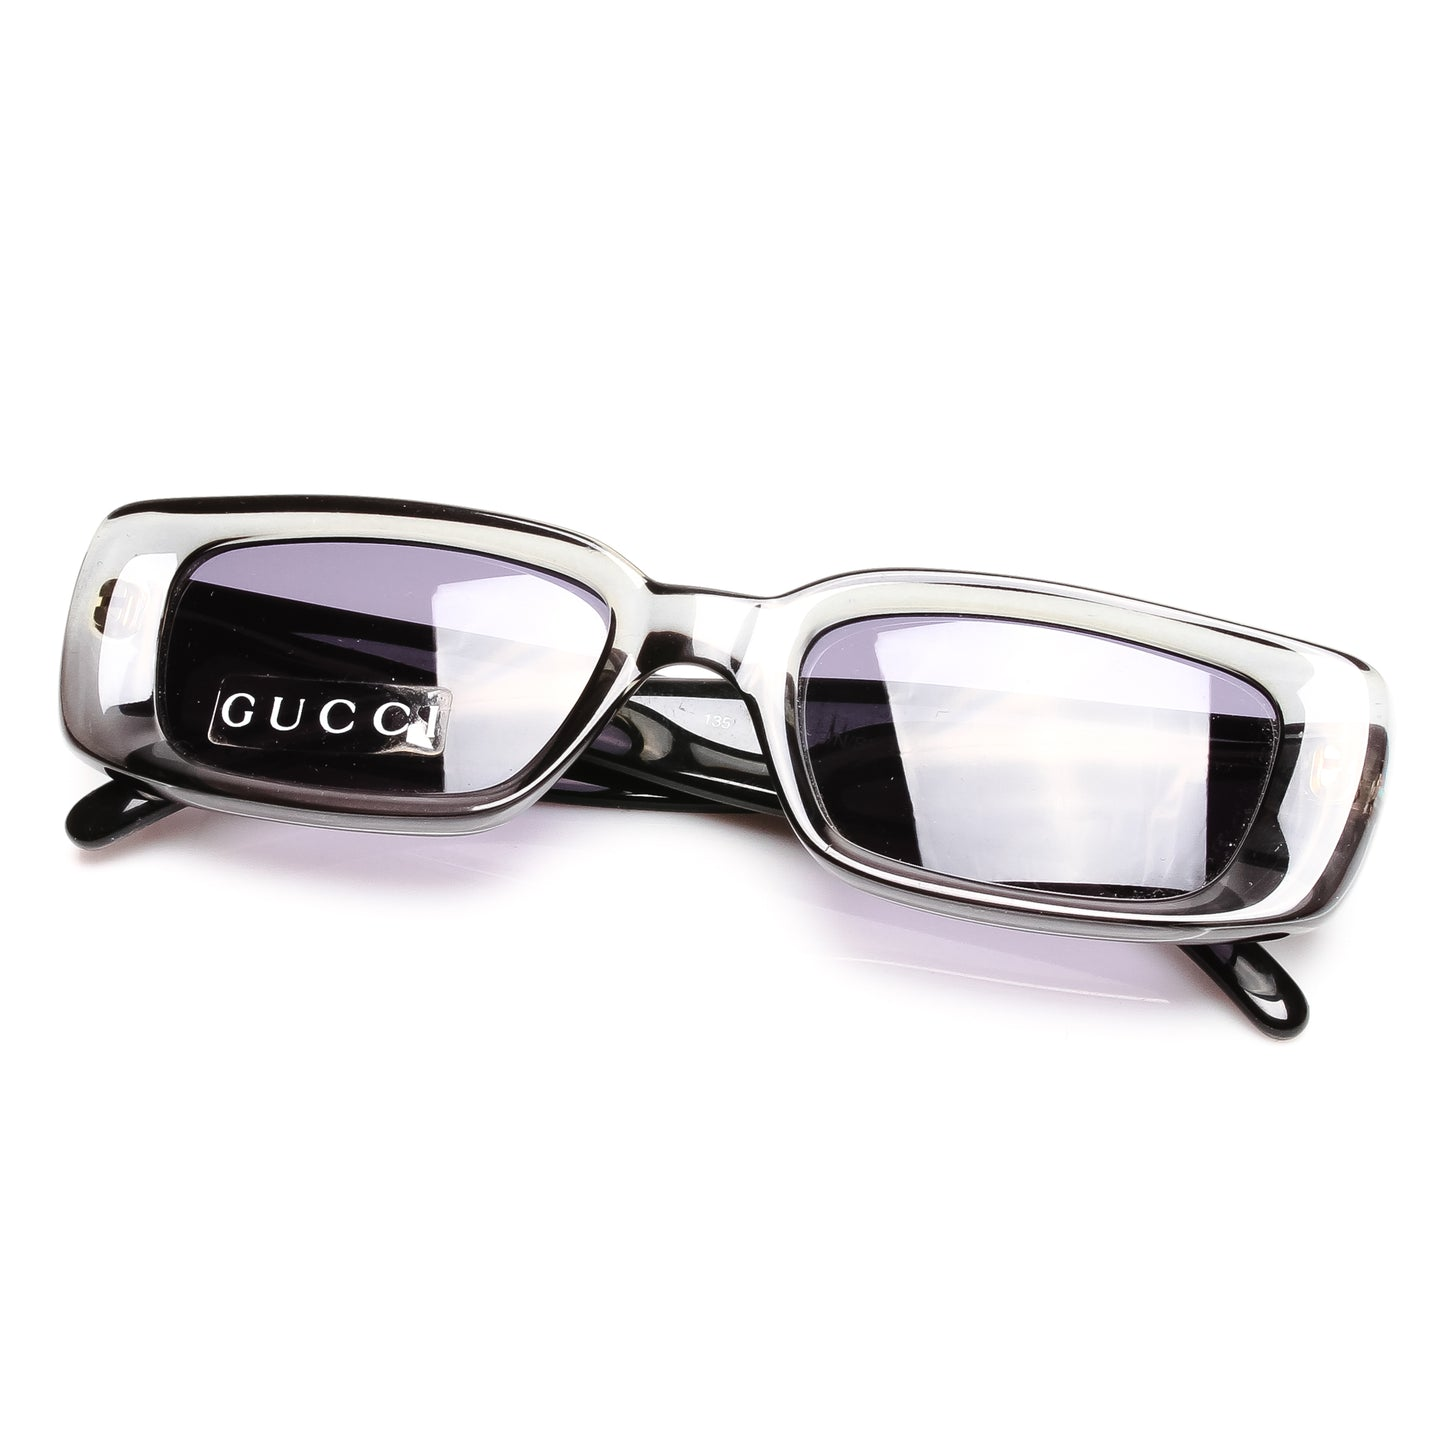 Gucci 2409/N/S E2K, Gucci , glasses frames, eyeglasses online, eyeglass frames, mens glasses, womens glasses, buy glasses online, designer eyeglasses, vintage sunglasses, retro sunglasses, vintage glasses, sunglass, eyeglass, glasses, lens, vintage frames company, vf